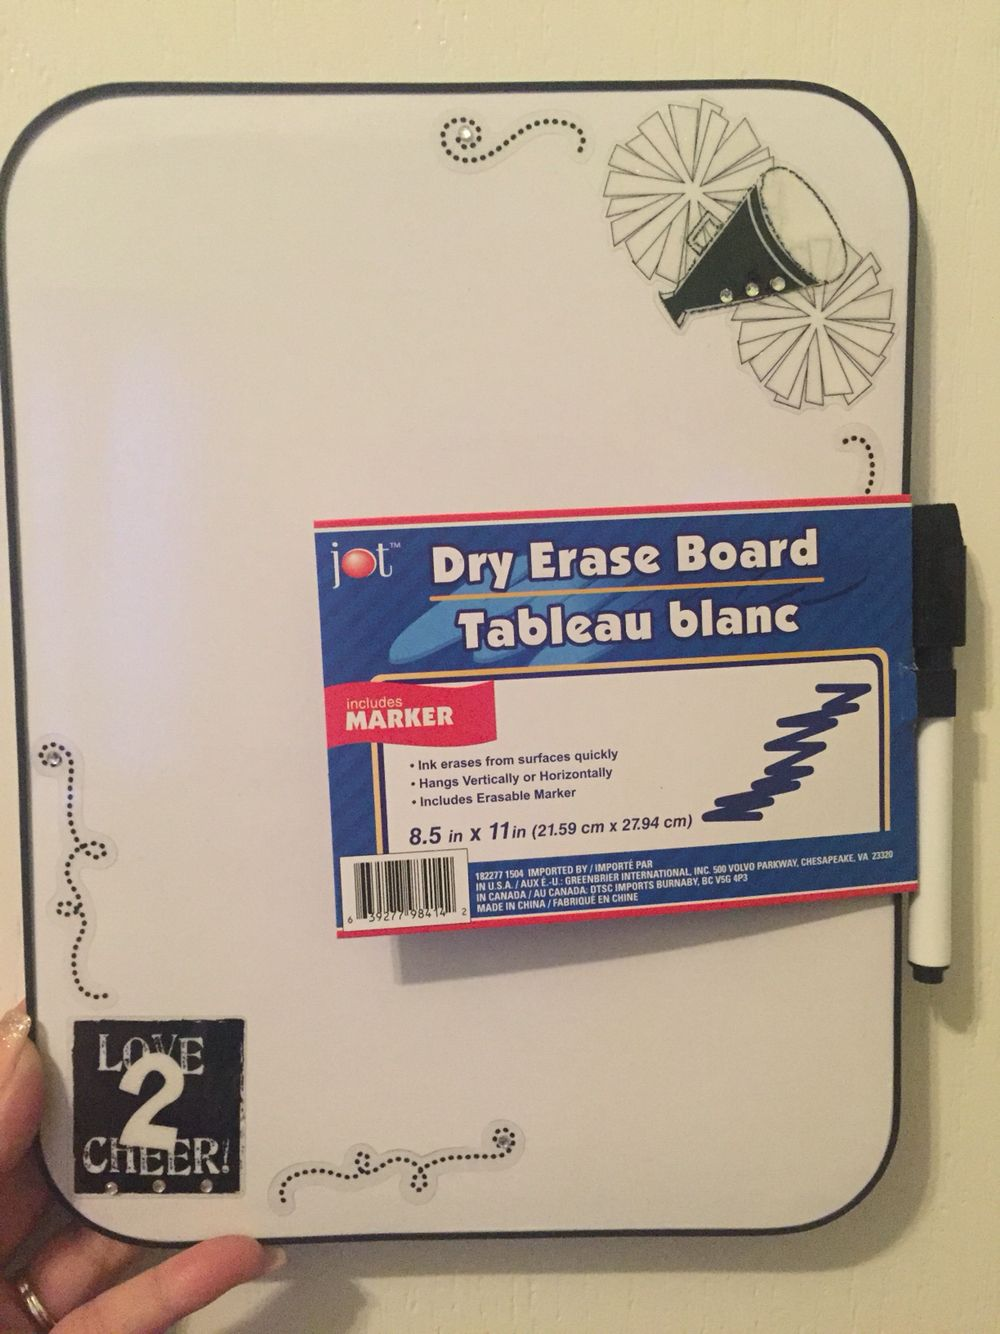 Dry Erase Boards Added Stickers From Hobby Lobby Bought Boards At Local Dollar Tree Great Camp Gifts Dry Erase Board Dry Erase Camping Gifts